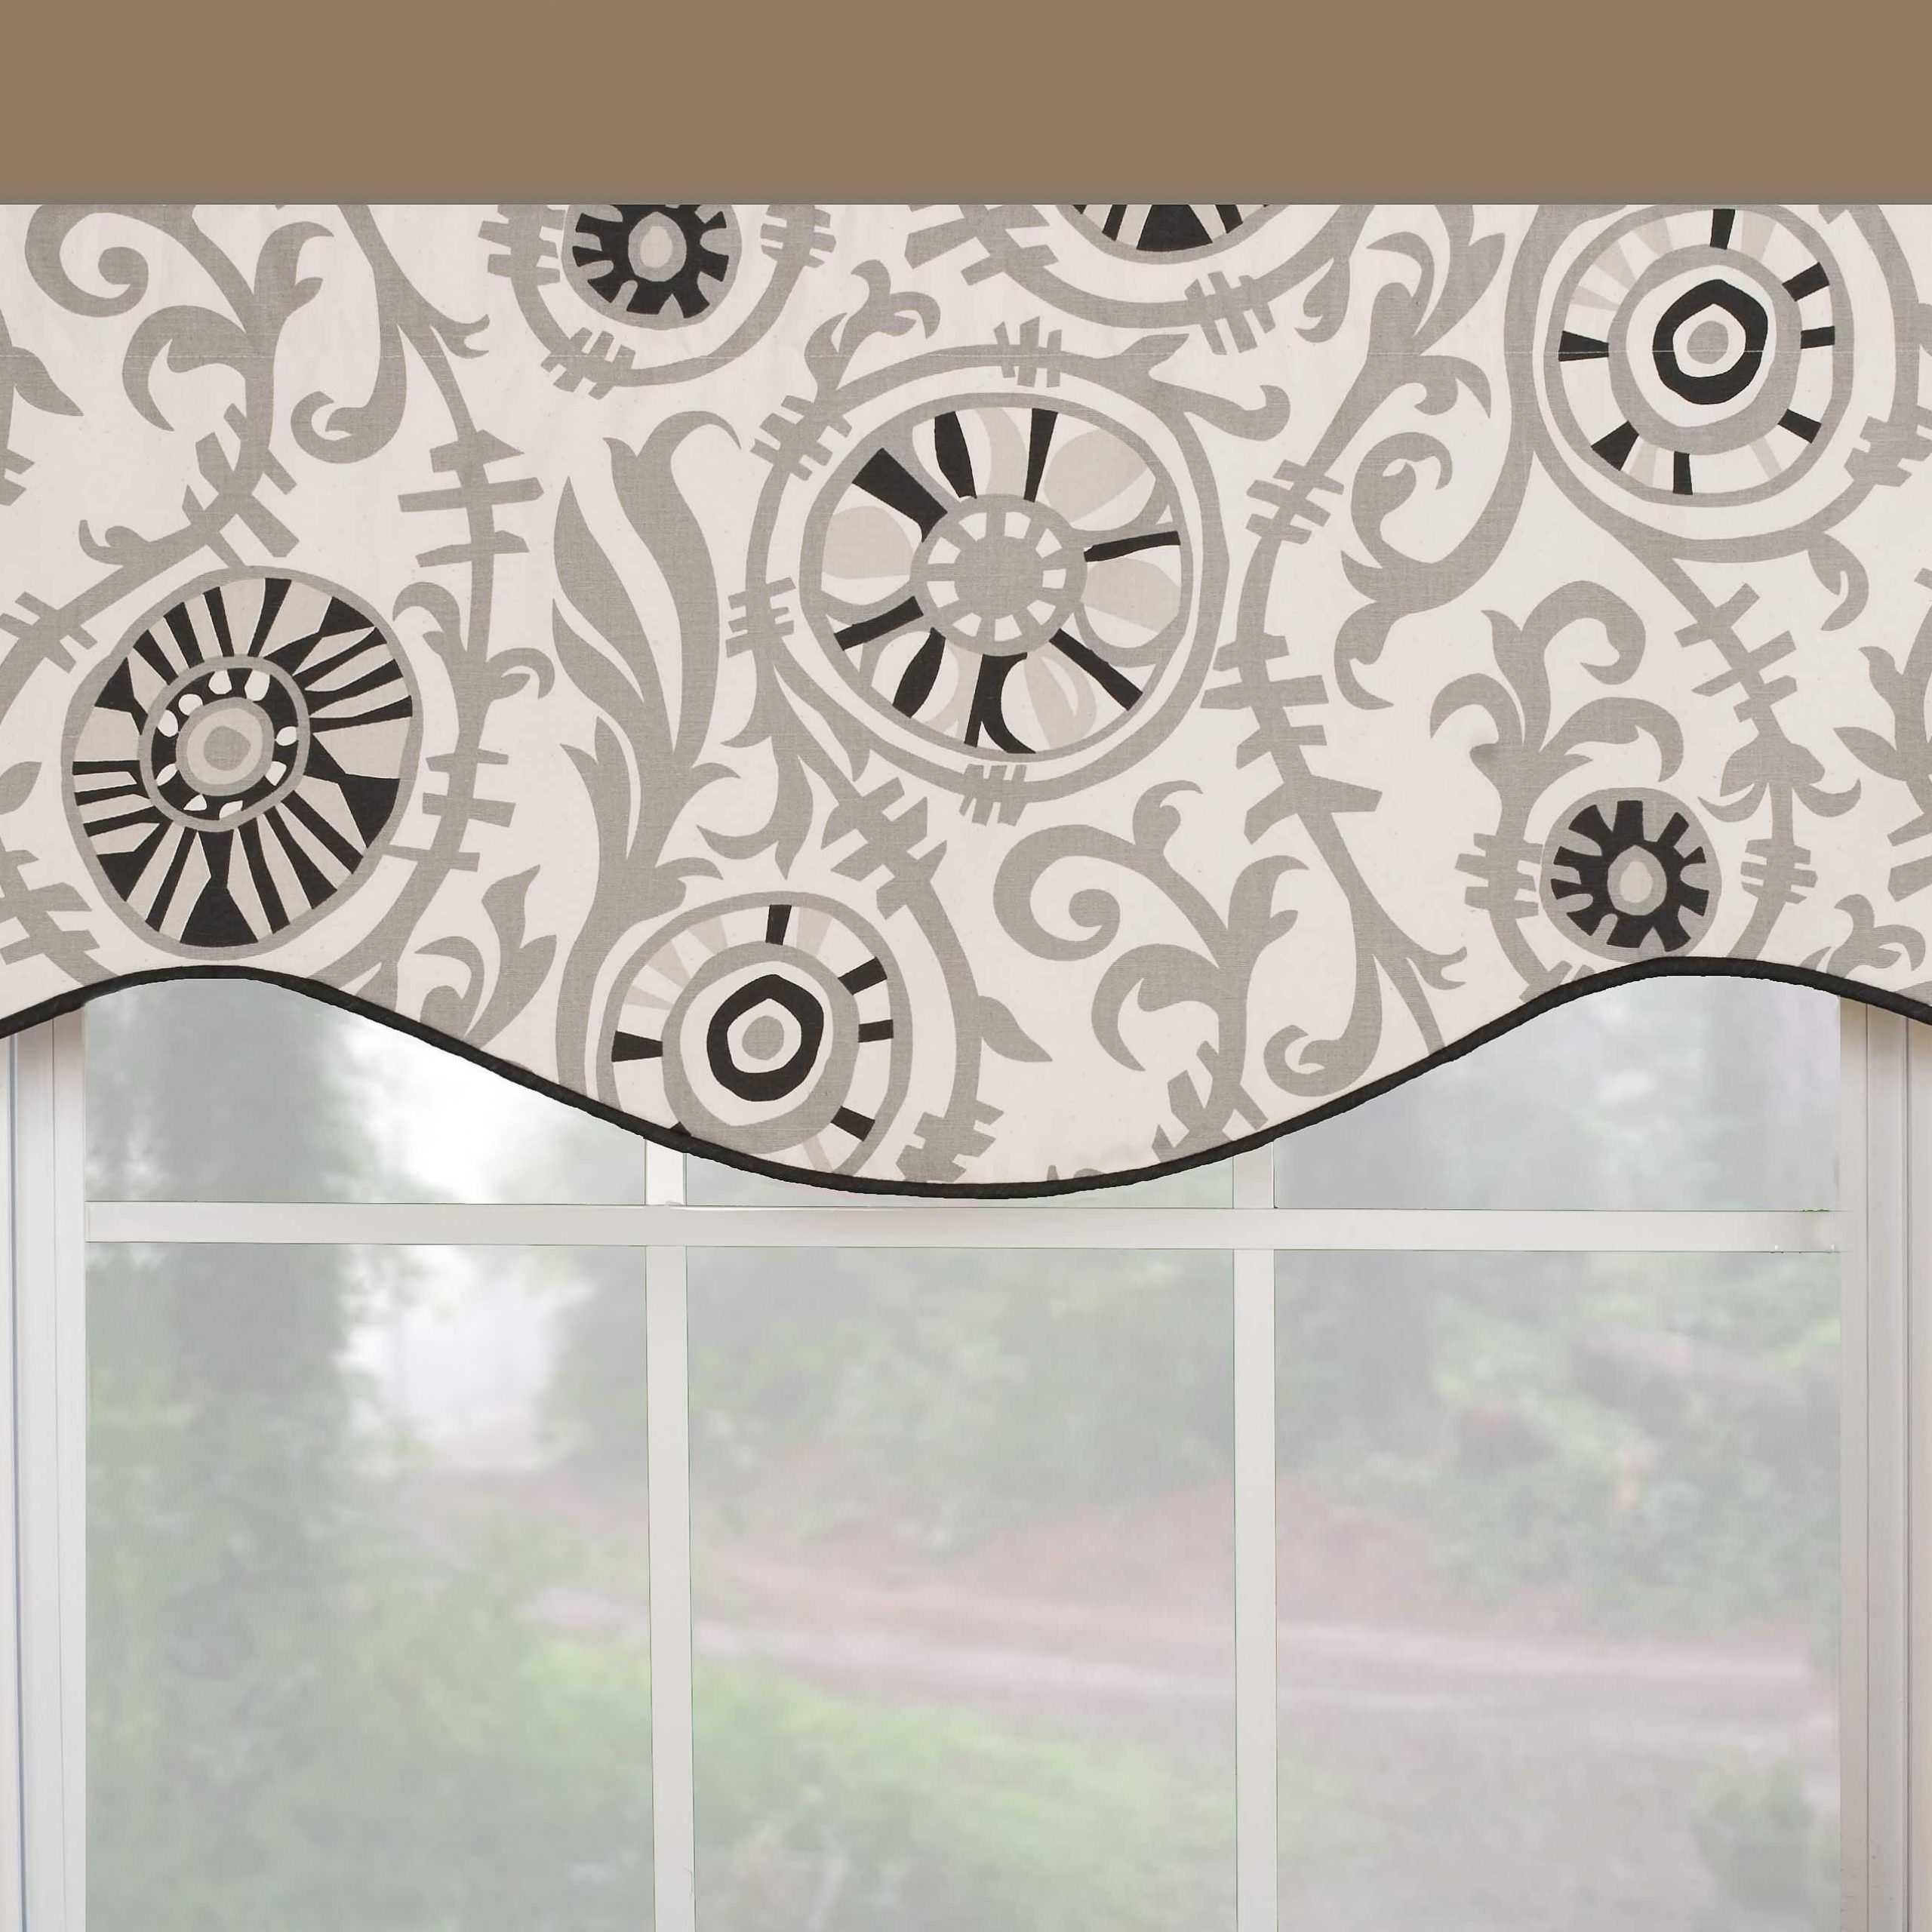 Popular Fascinating Window Valance White Knit Lace Bird Motif Pertaining To White Knit Lace Bird Motif Window Curtain Tiers (View 12 of 20)